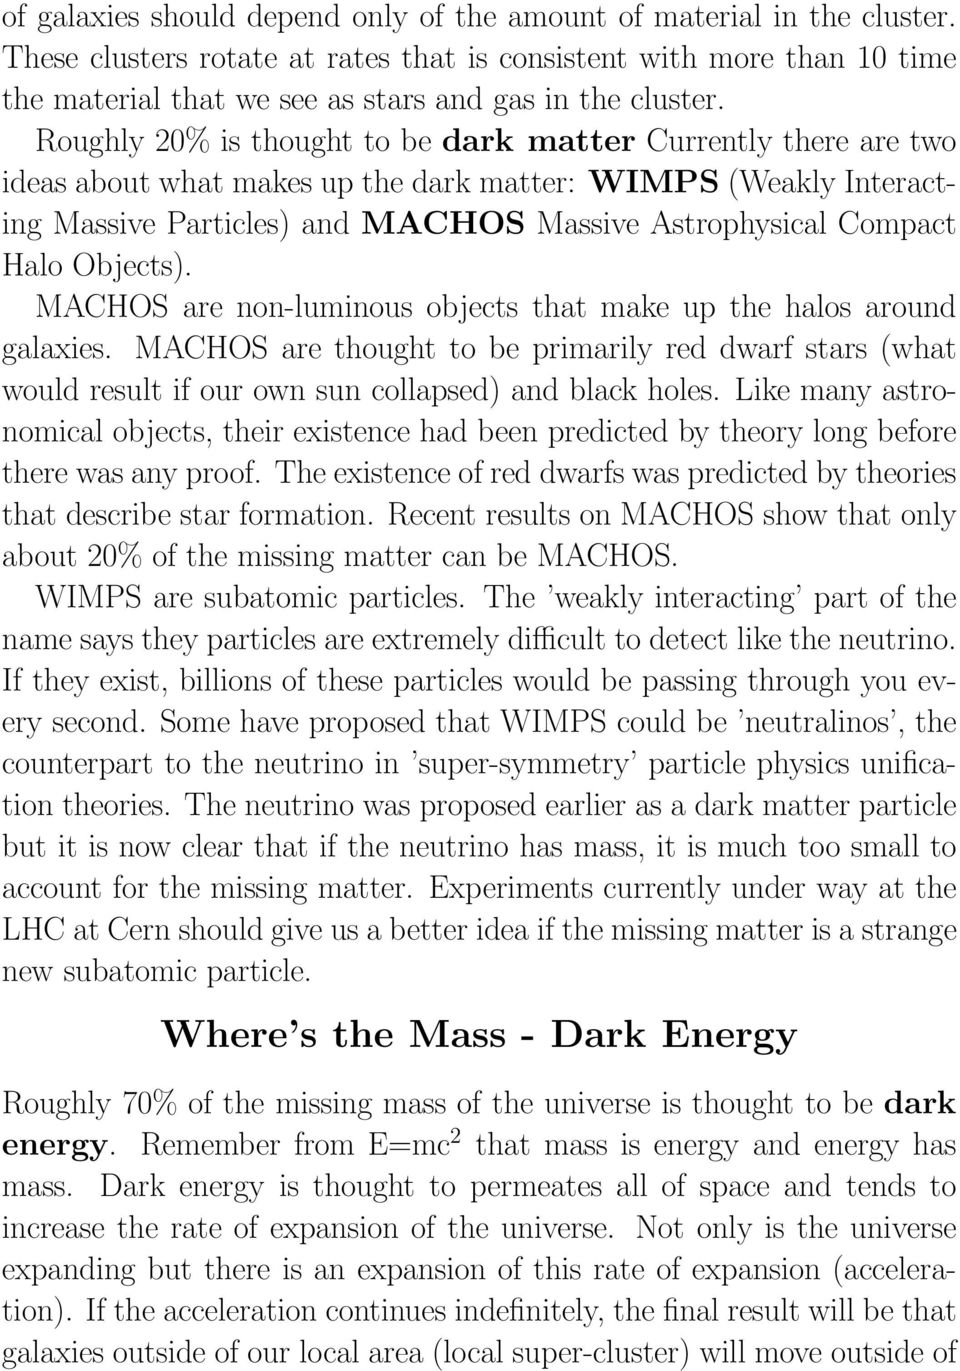 Roughly 20% is thought to be dark matter Currently there are two ideas about what makes up the dark matter: WIMPS (Weakly Interacting Massive Particles) and MACHOS Massive Astrophysical Compact Halo